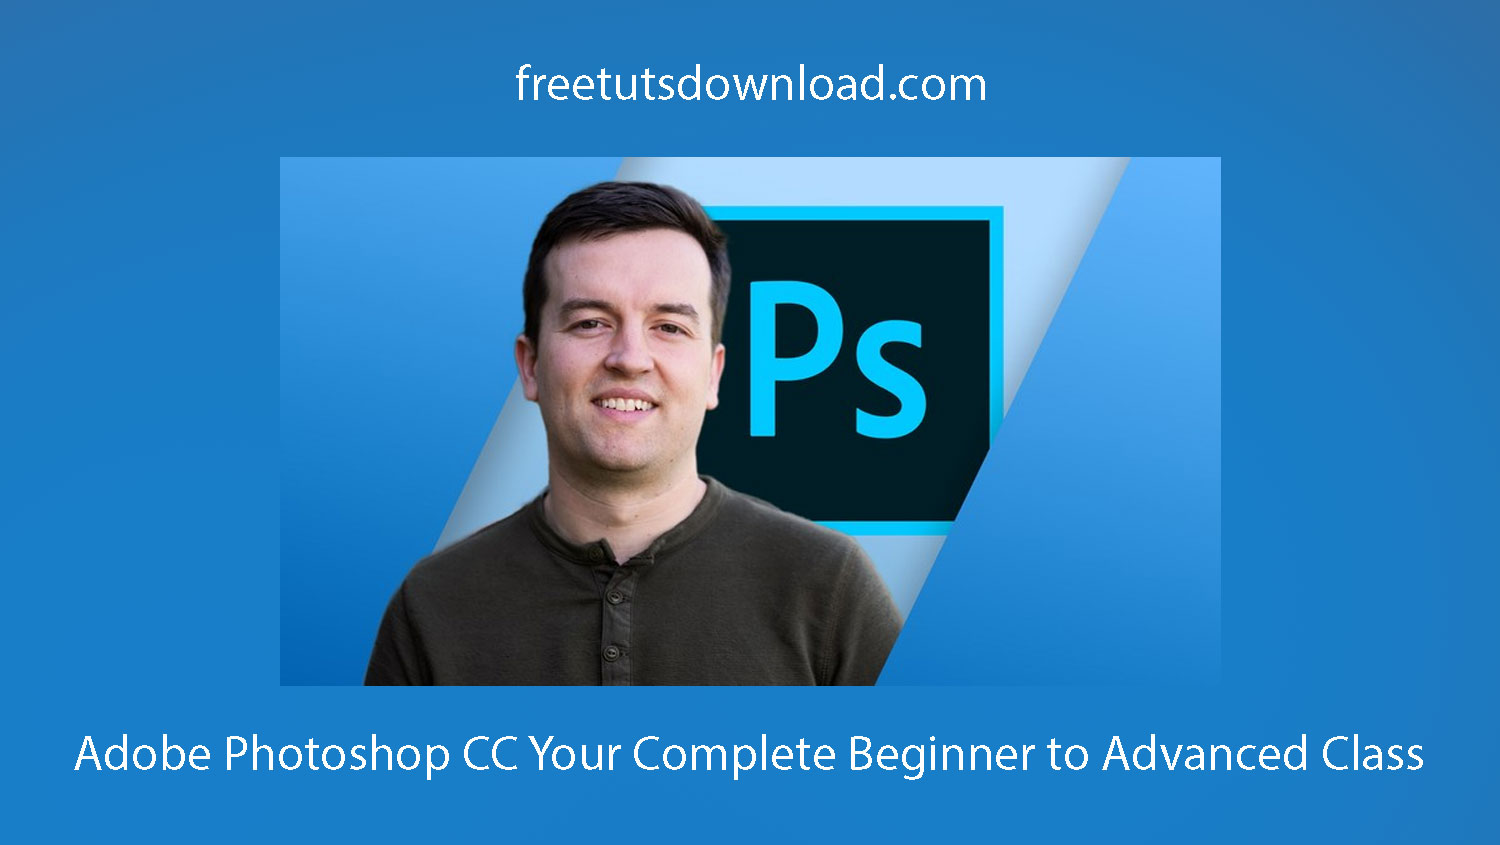 Adobe Photoshop CC Your Complete Beginner to Advanced Class